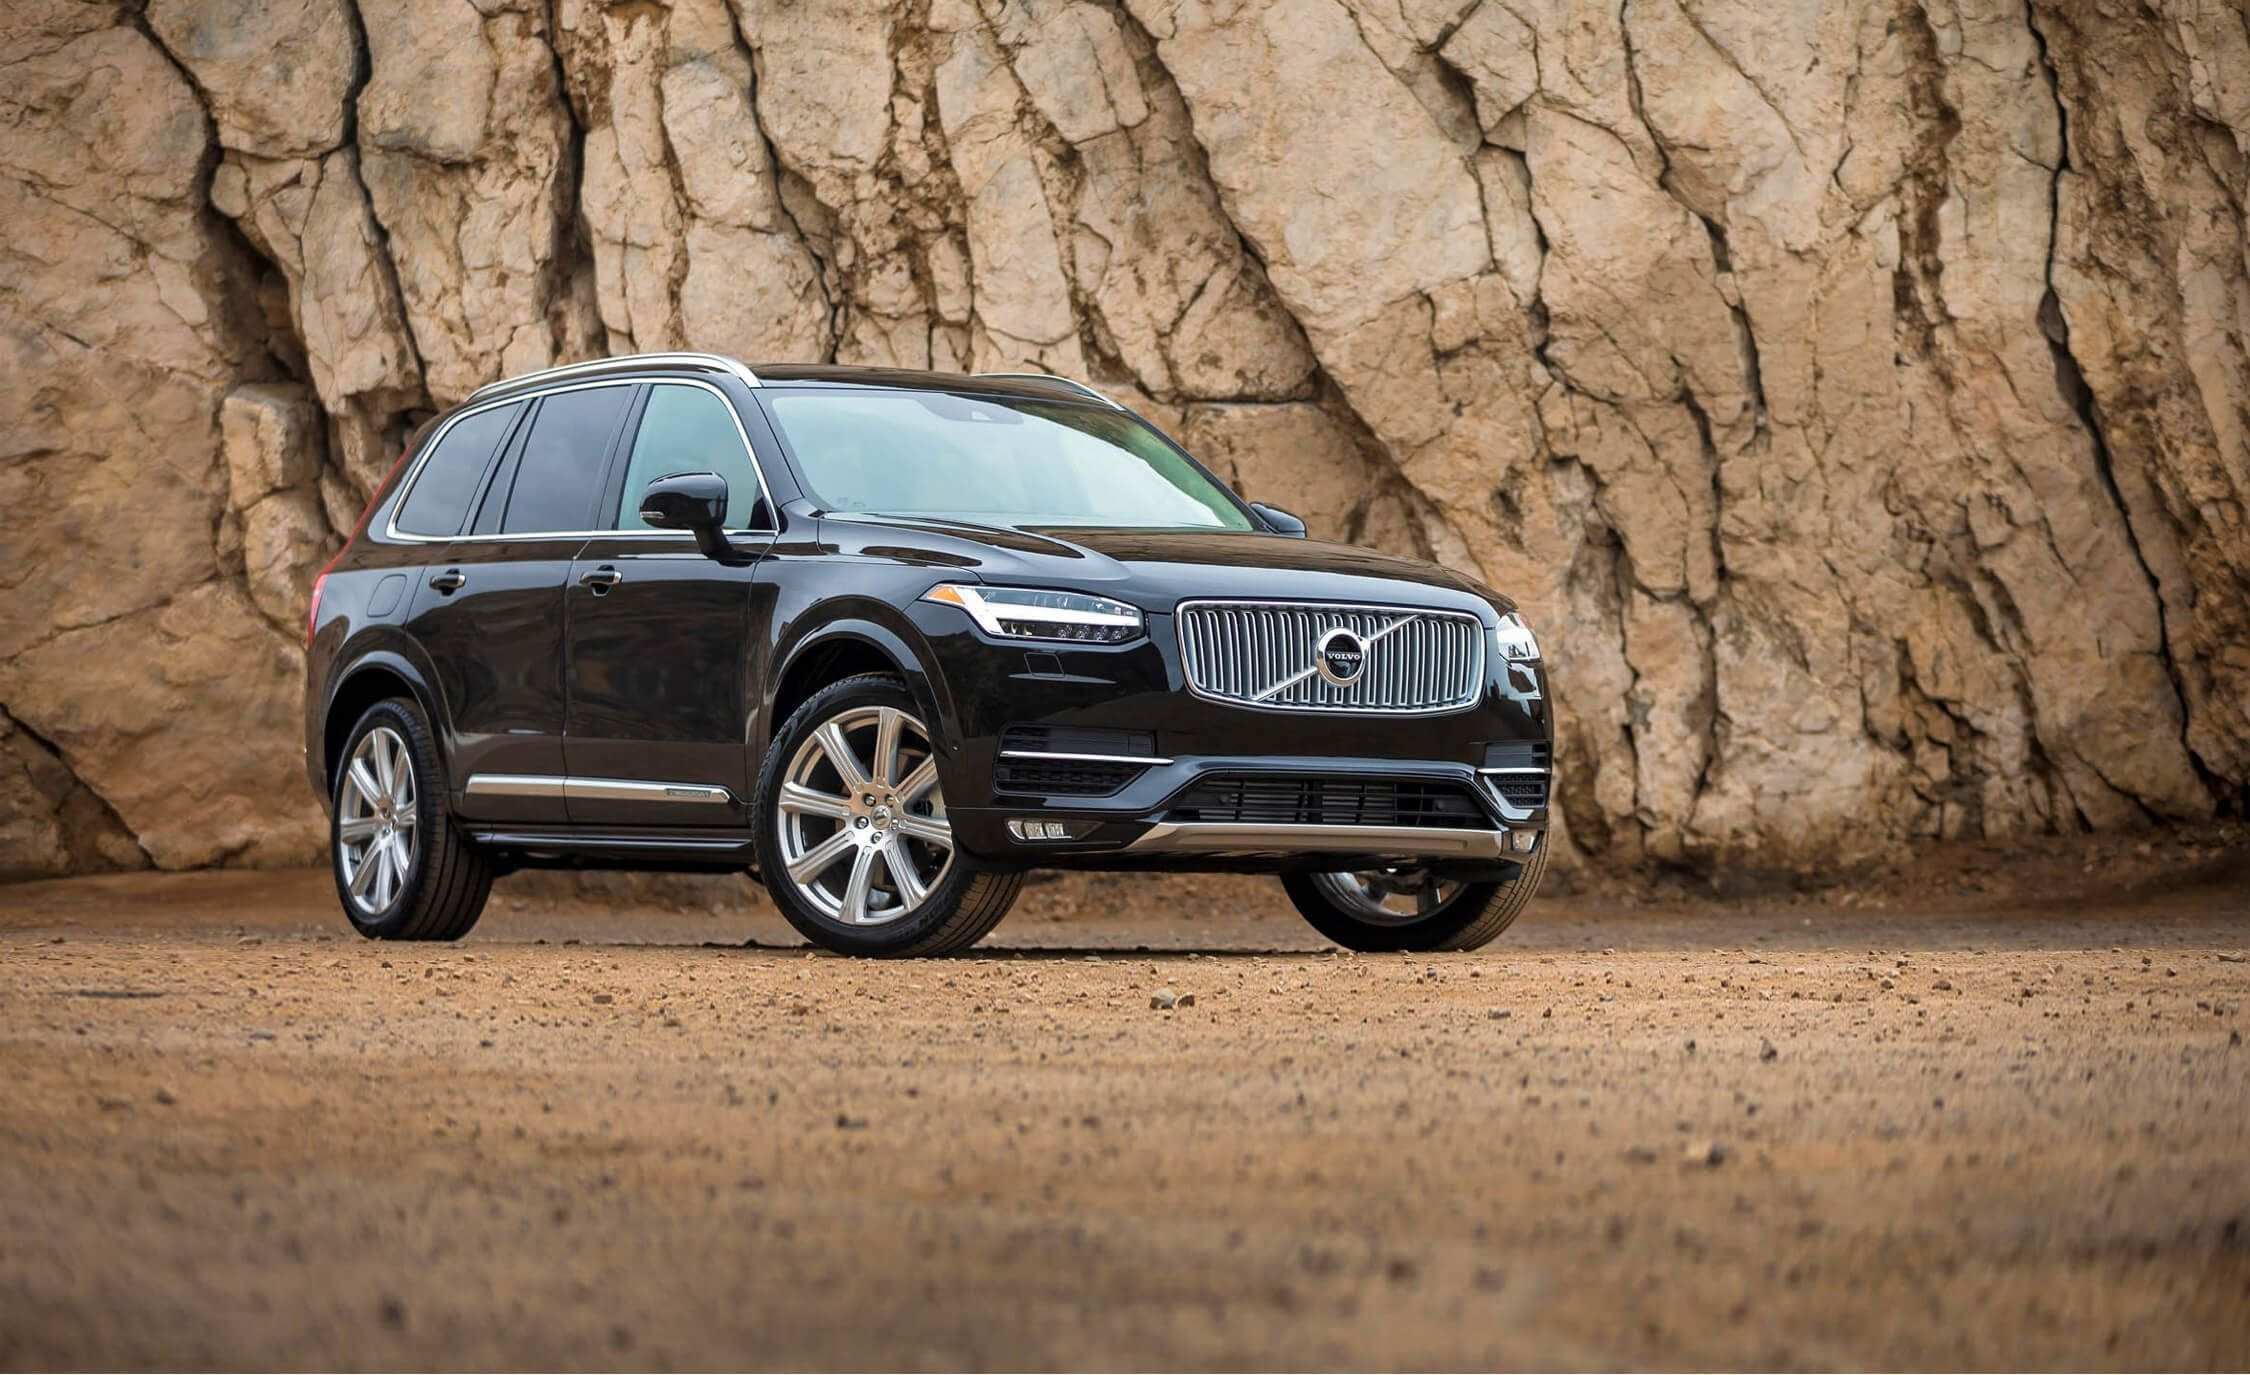 14 Concept of Volvo Xc90 2020 New Concept Research New by Volvo Xc90 2020 New Concept